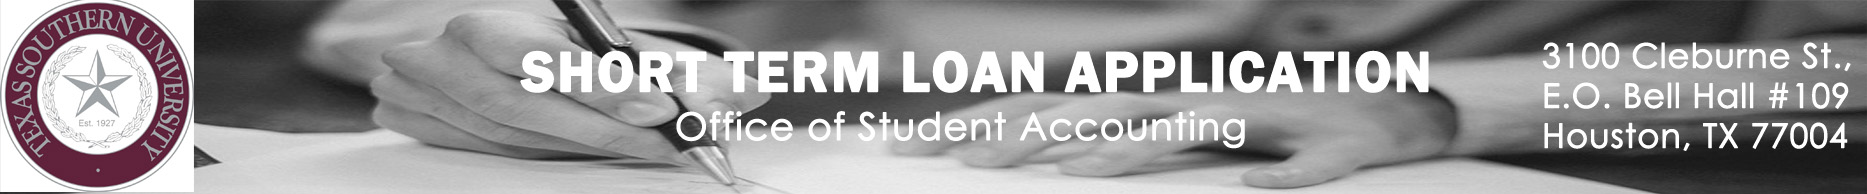 Short Term Loan Application Banner